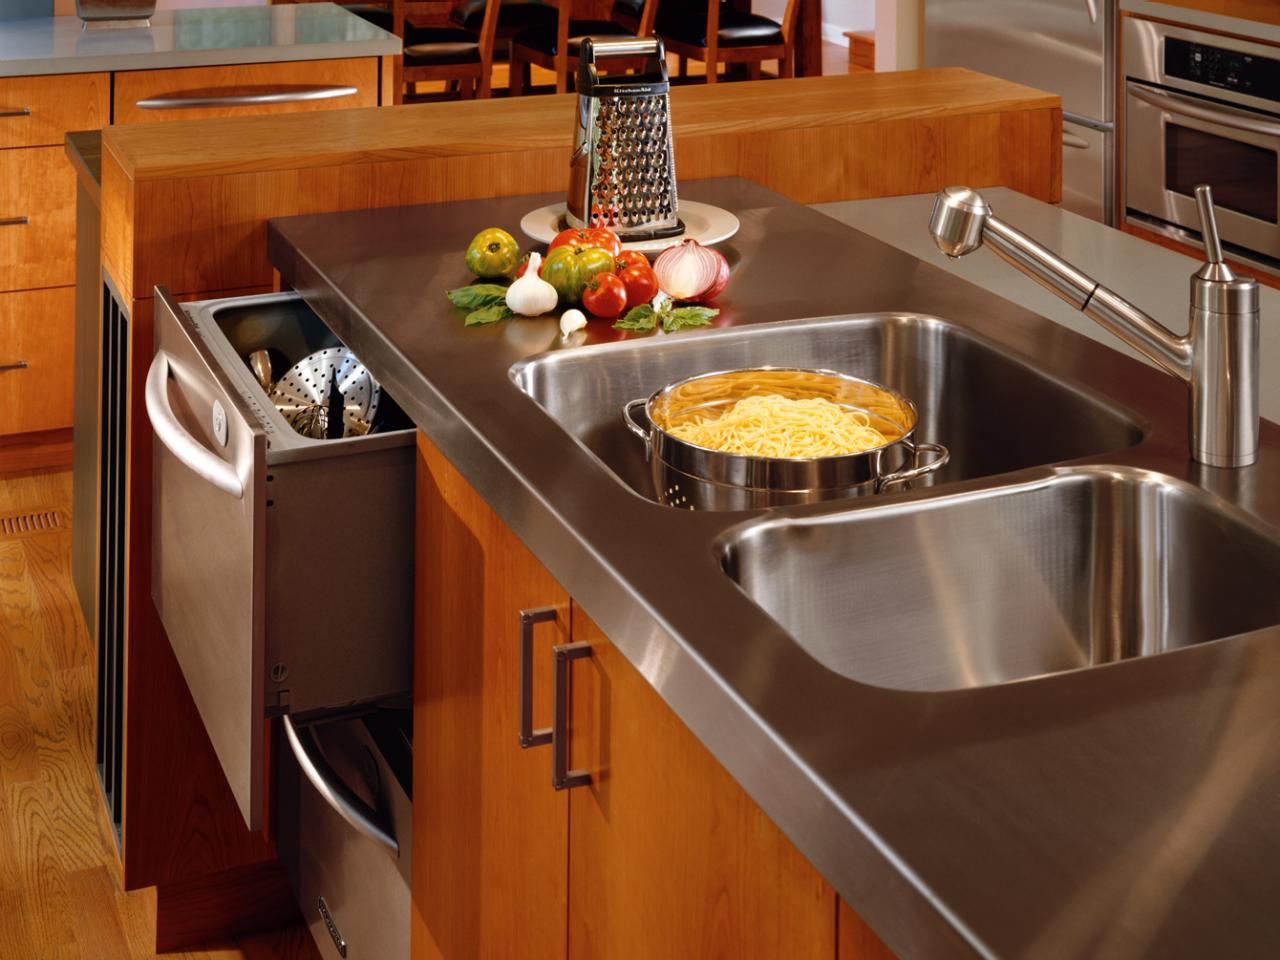 houzz sink other transitional stainless steel integrated countertops in countertop an with of cost photo kitchen